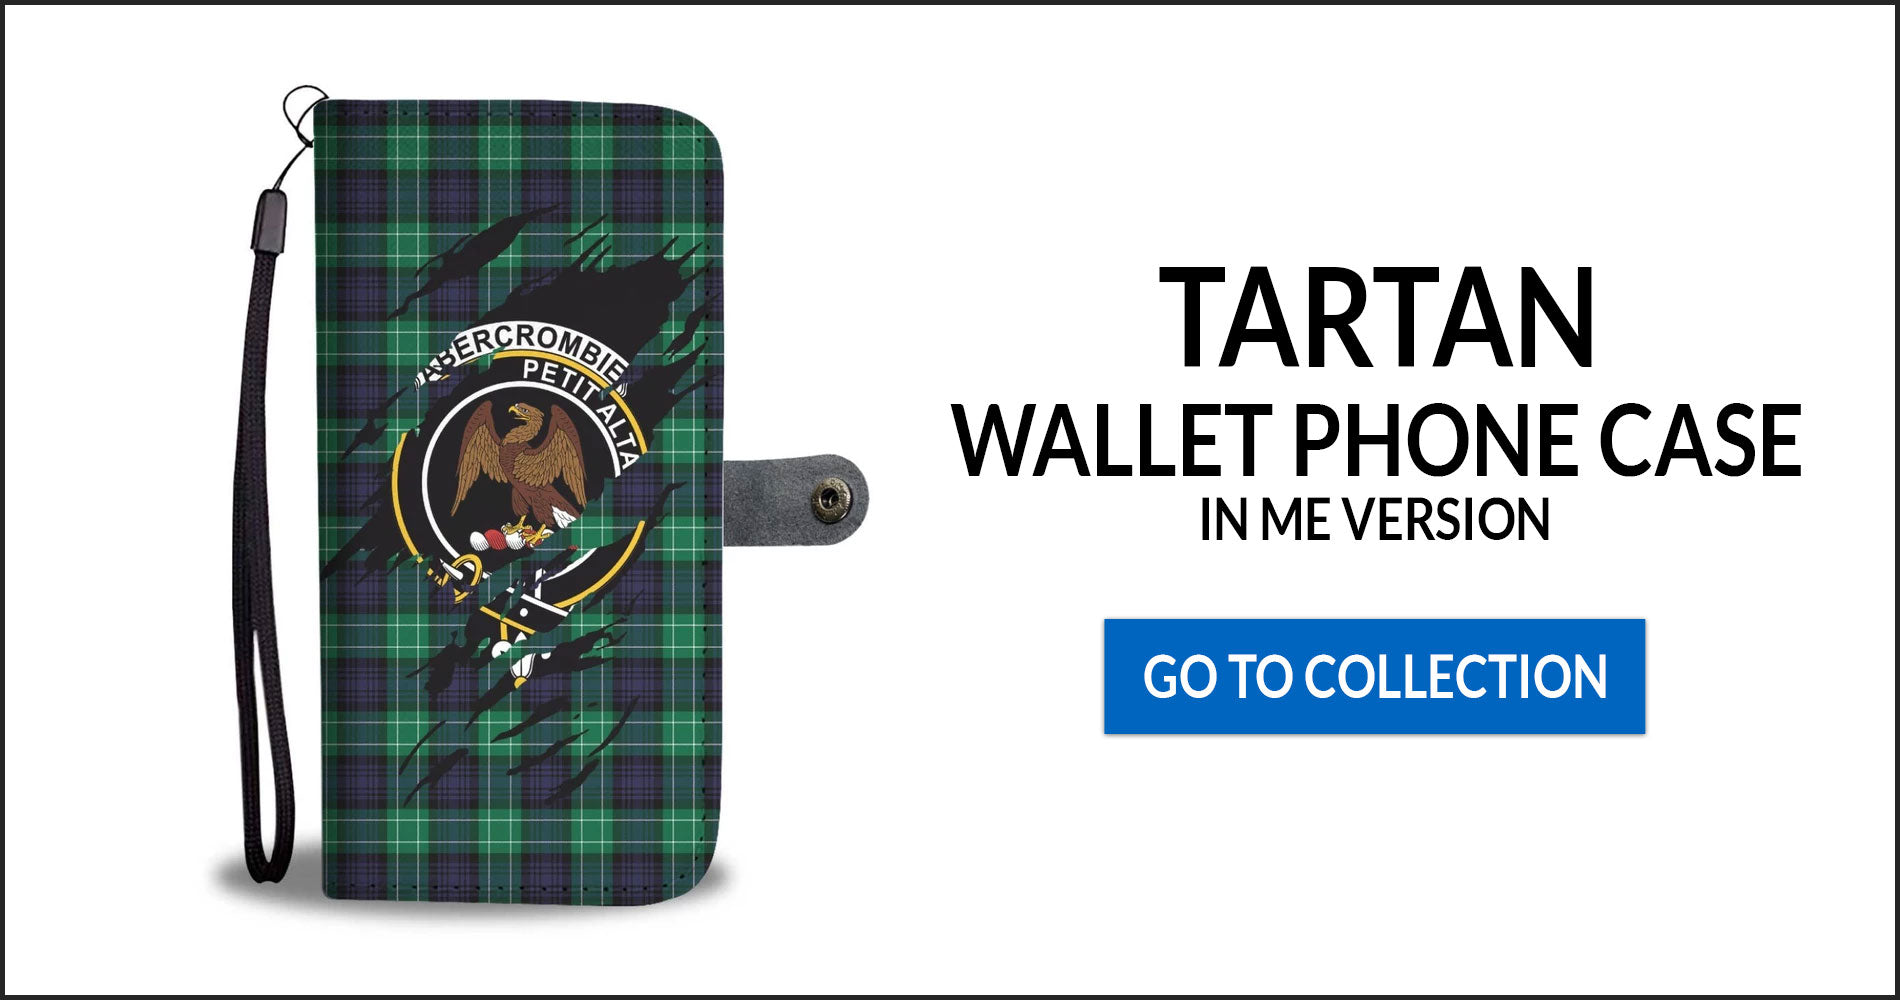 Tartan Wallet Phone Cases In Me Version